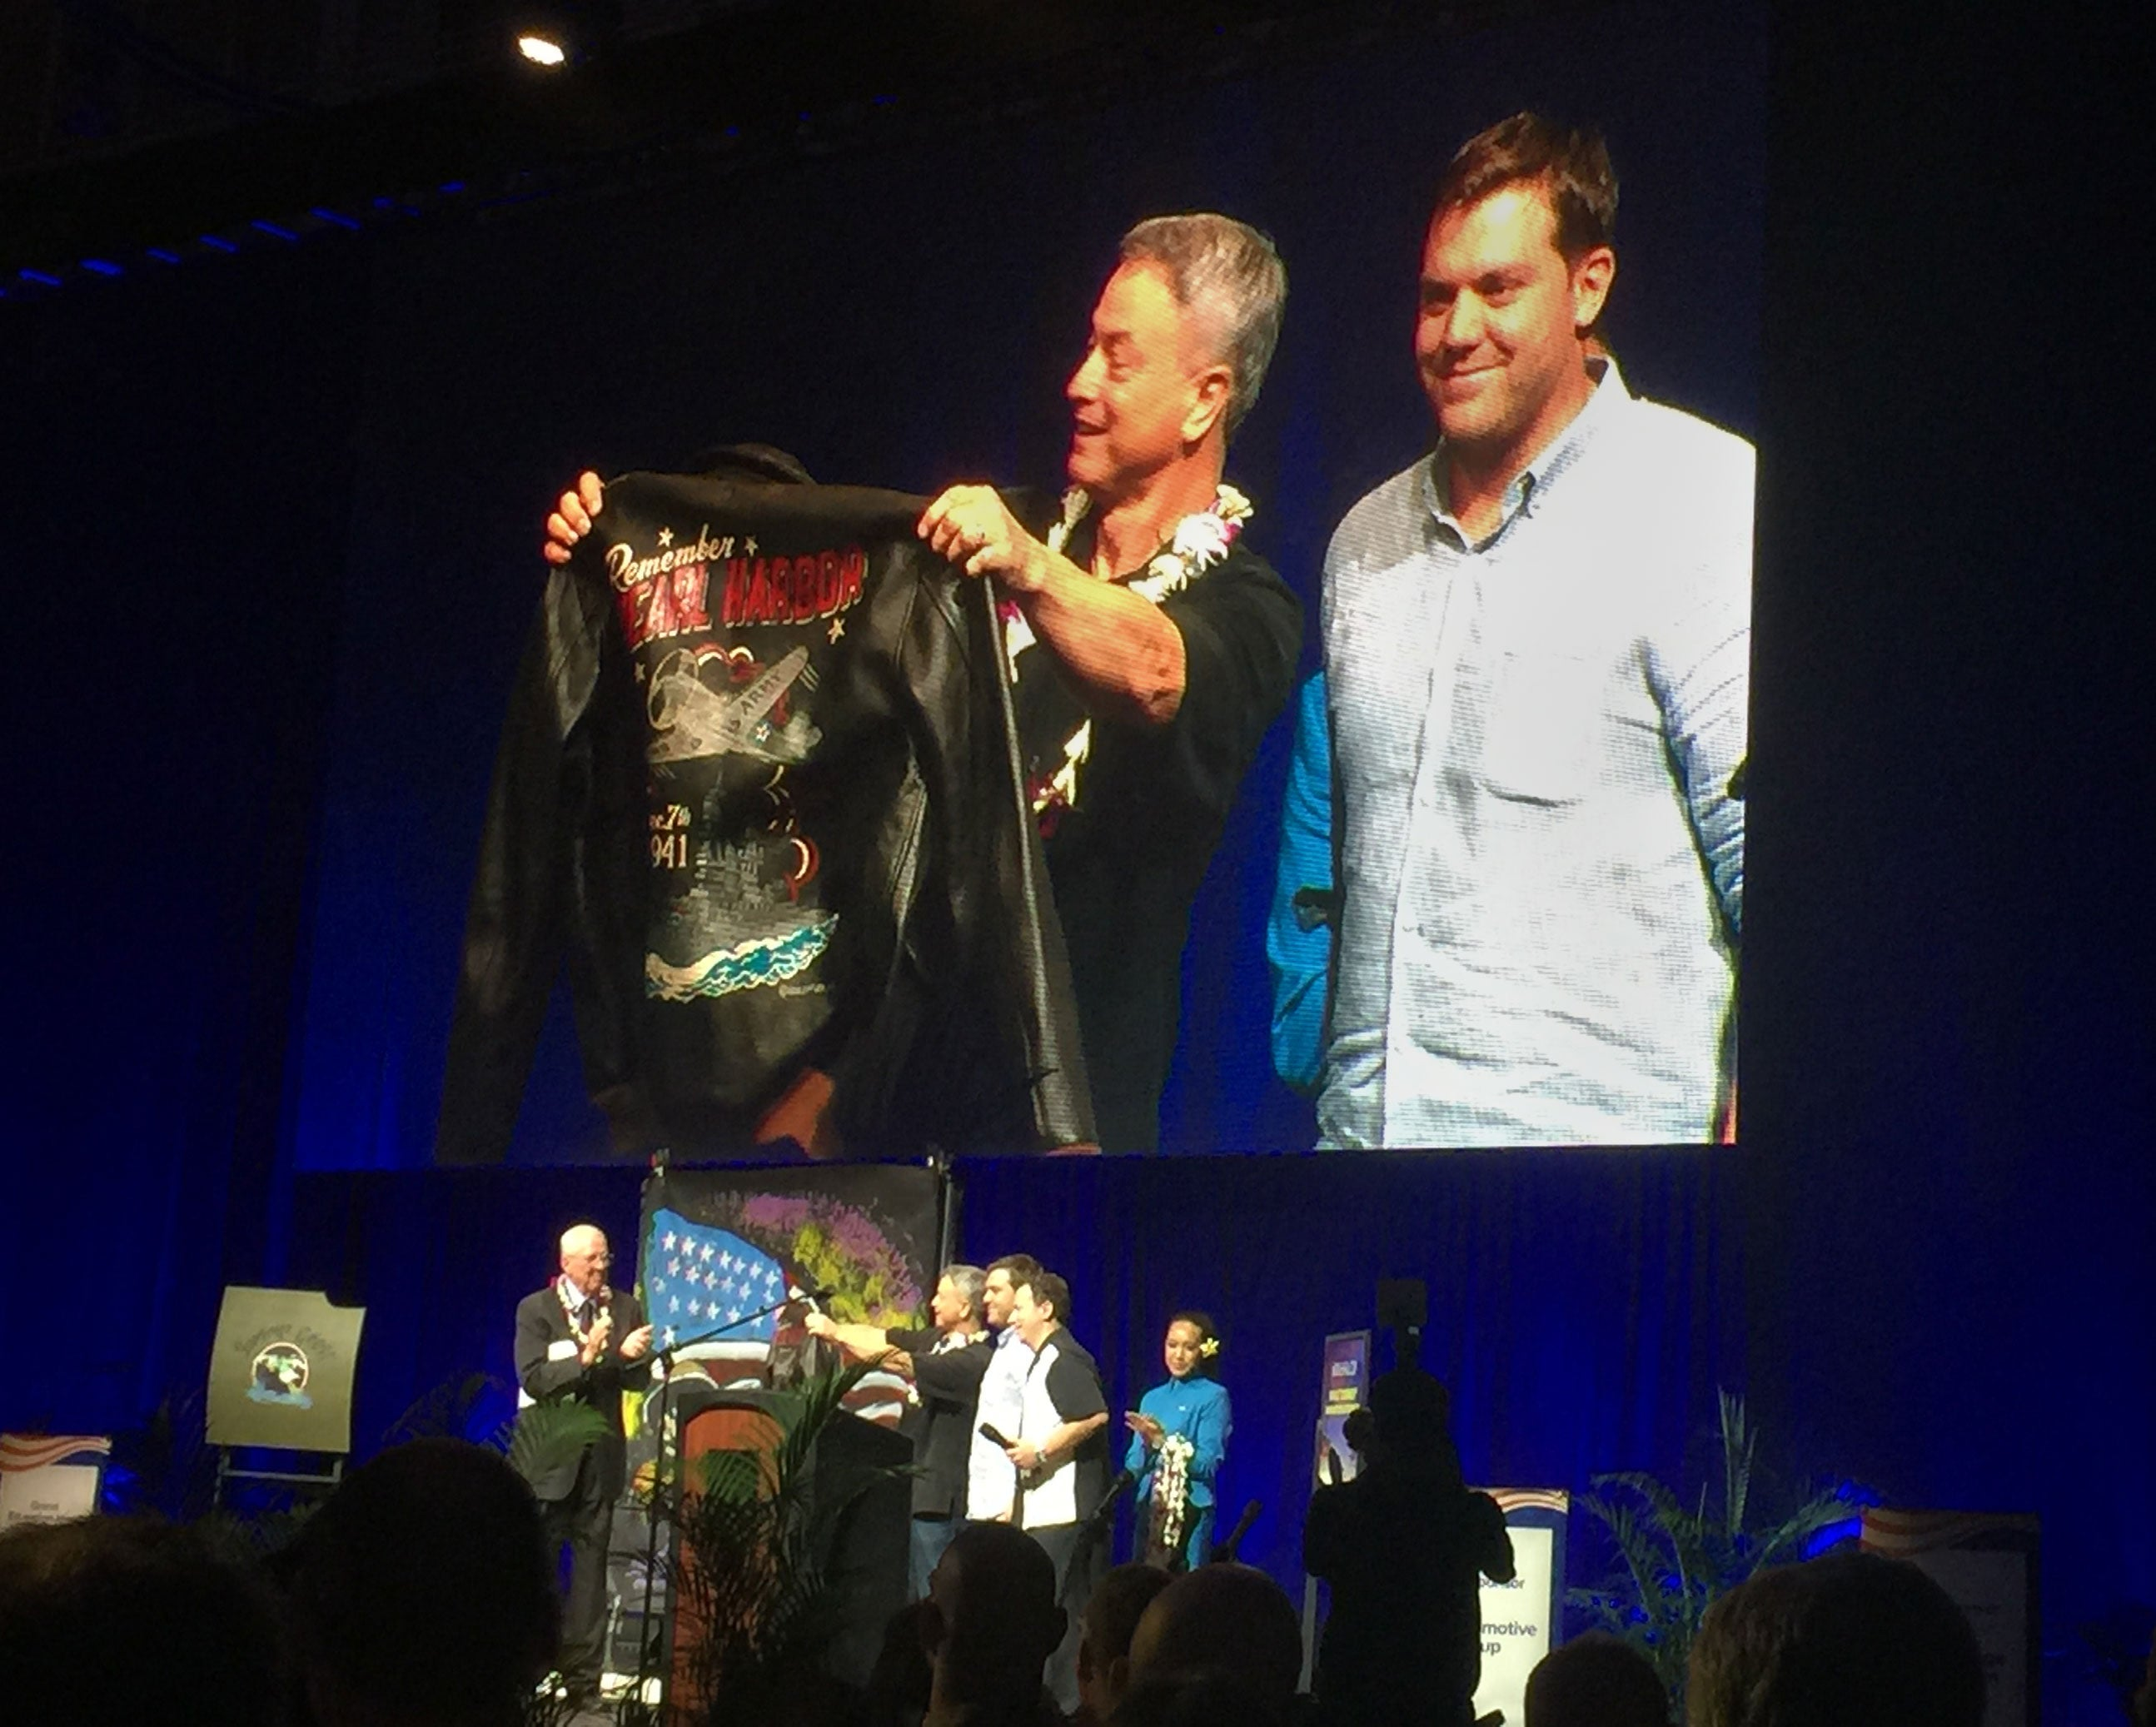 Mike Kennedy, a partner at Cockpit USA, presents Gary Sinise with one of our limited edition hand painted Remember Pearl Harbor A-2s.